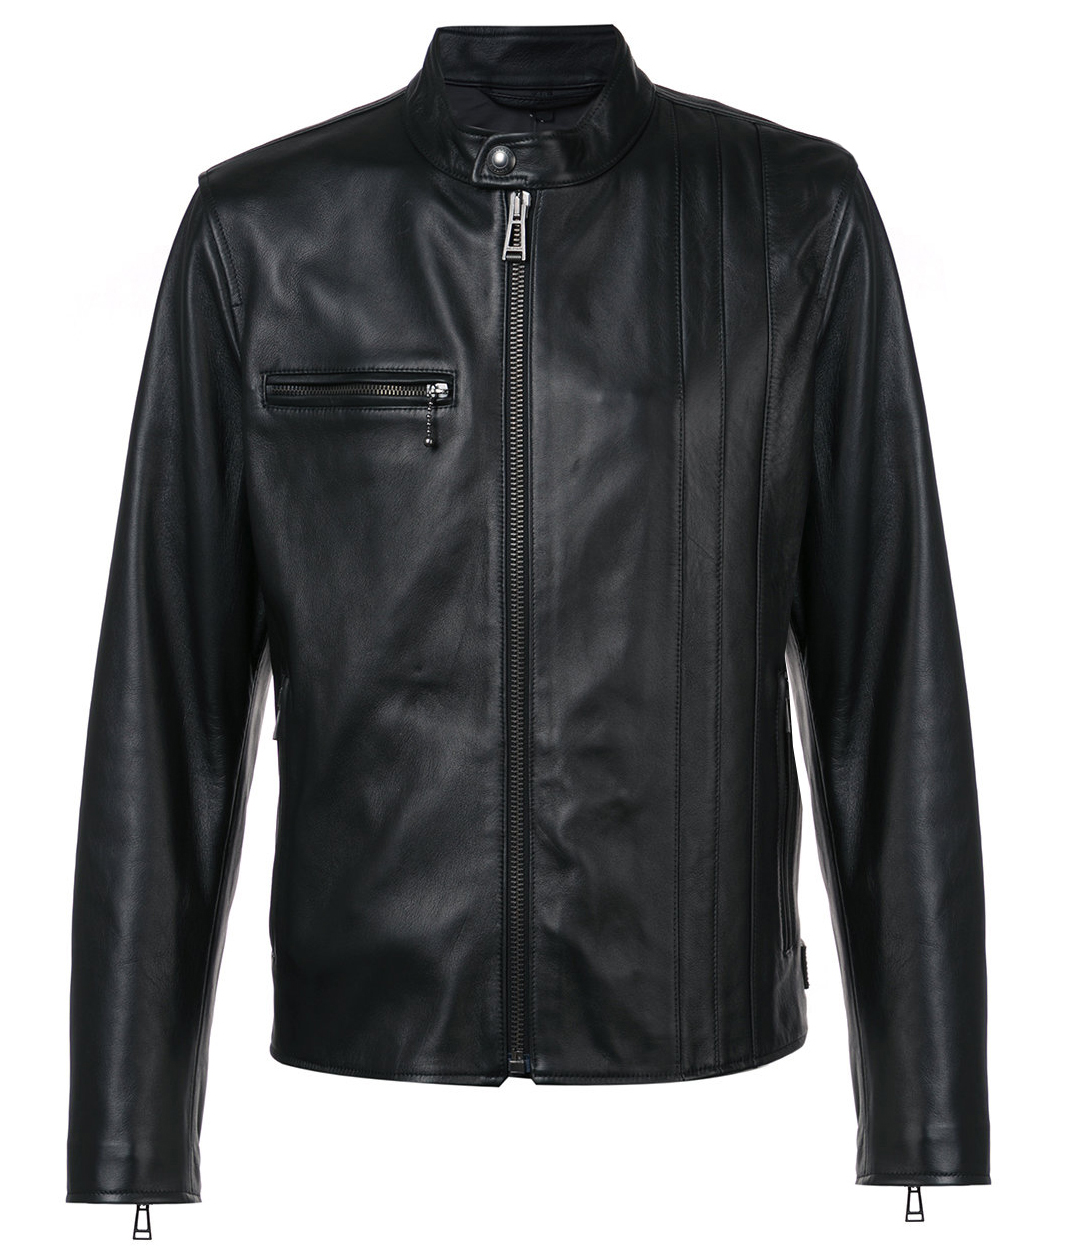 Sophnet Hempston biker Leather jackets -01.jpg